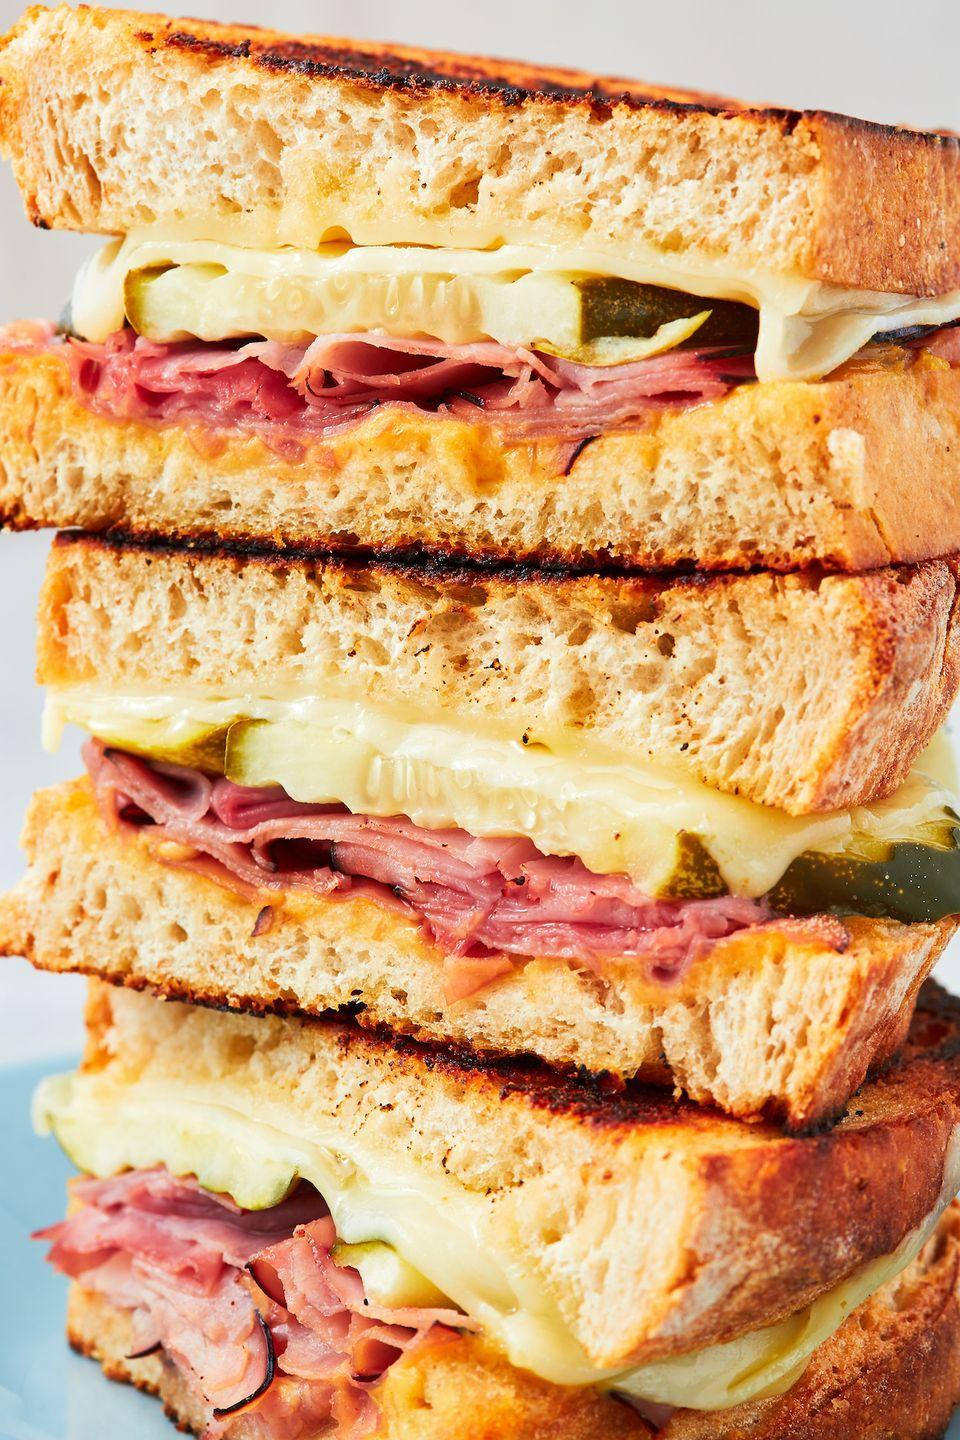 """<p>Keep things simple with this easy (but delish) recipe.</p><p>Get the recipe from <a href=""""https://www.delish.com/cooking/recipe-ideas/a26870550/ham-and-cheese-sandwich-recipe/"""" rel=""""nofollow noopener"""" target=""""_blank"""" data-ylk=""""slk:Delish"""" class=""""link rapid-noclick-resp"""">Delish</a>.</p>"""